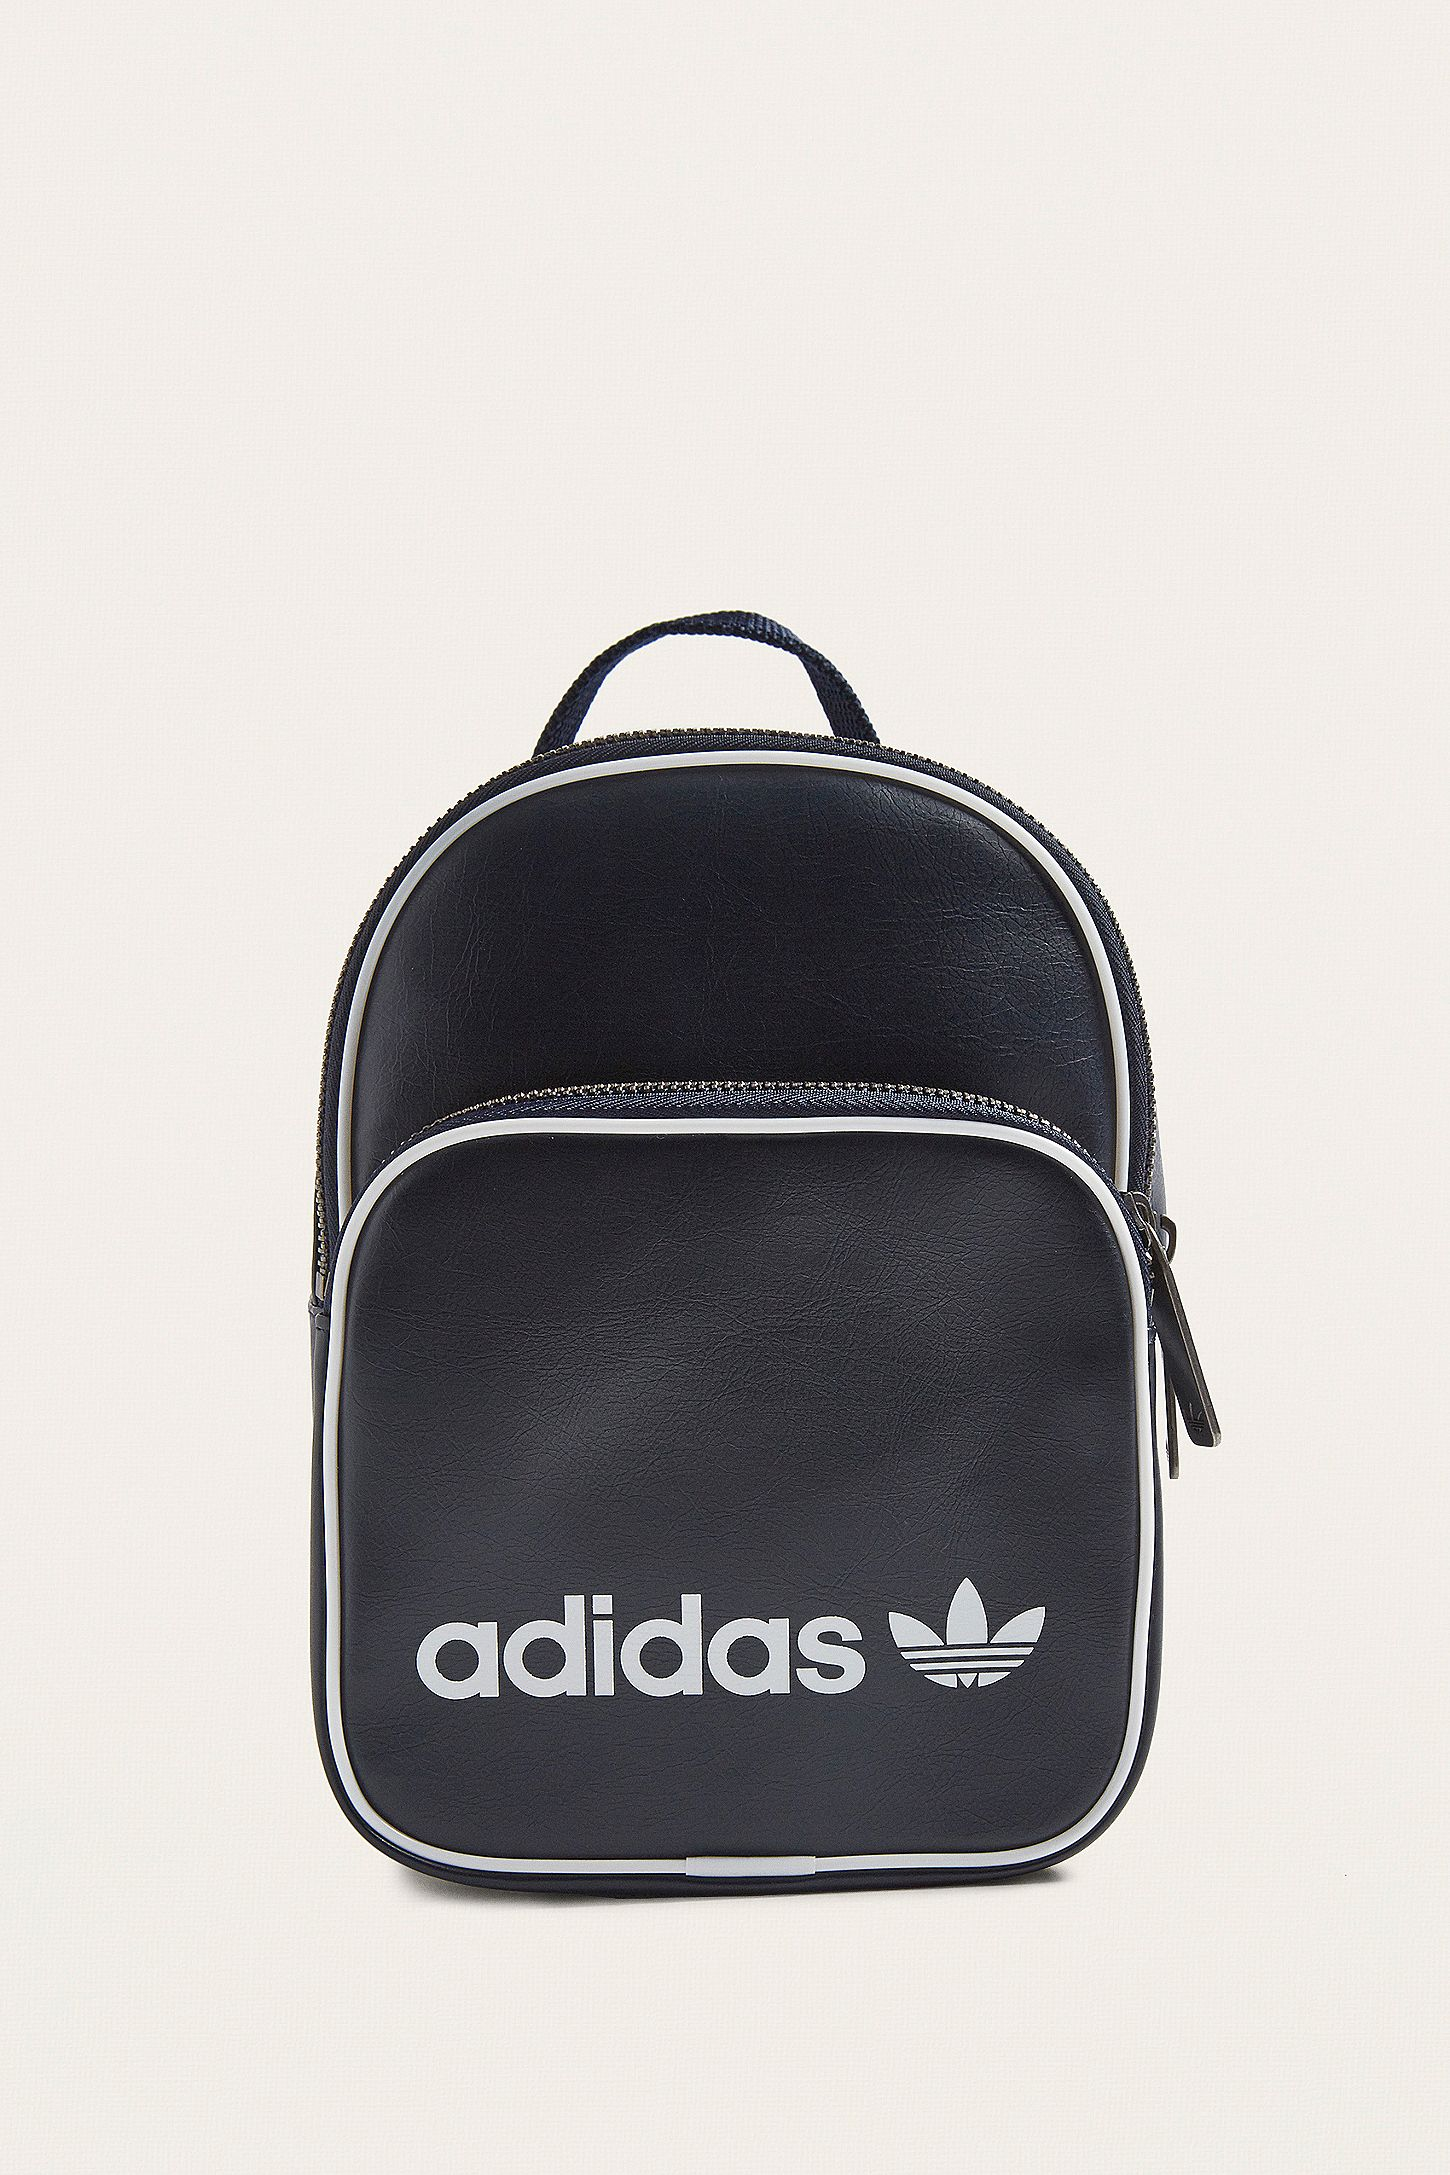 f30916caeb6d adidas Originals Classic Mini Backpack